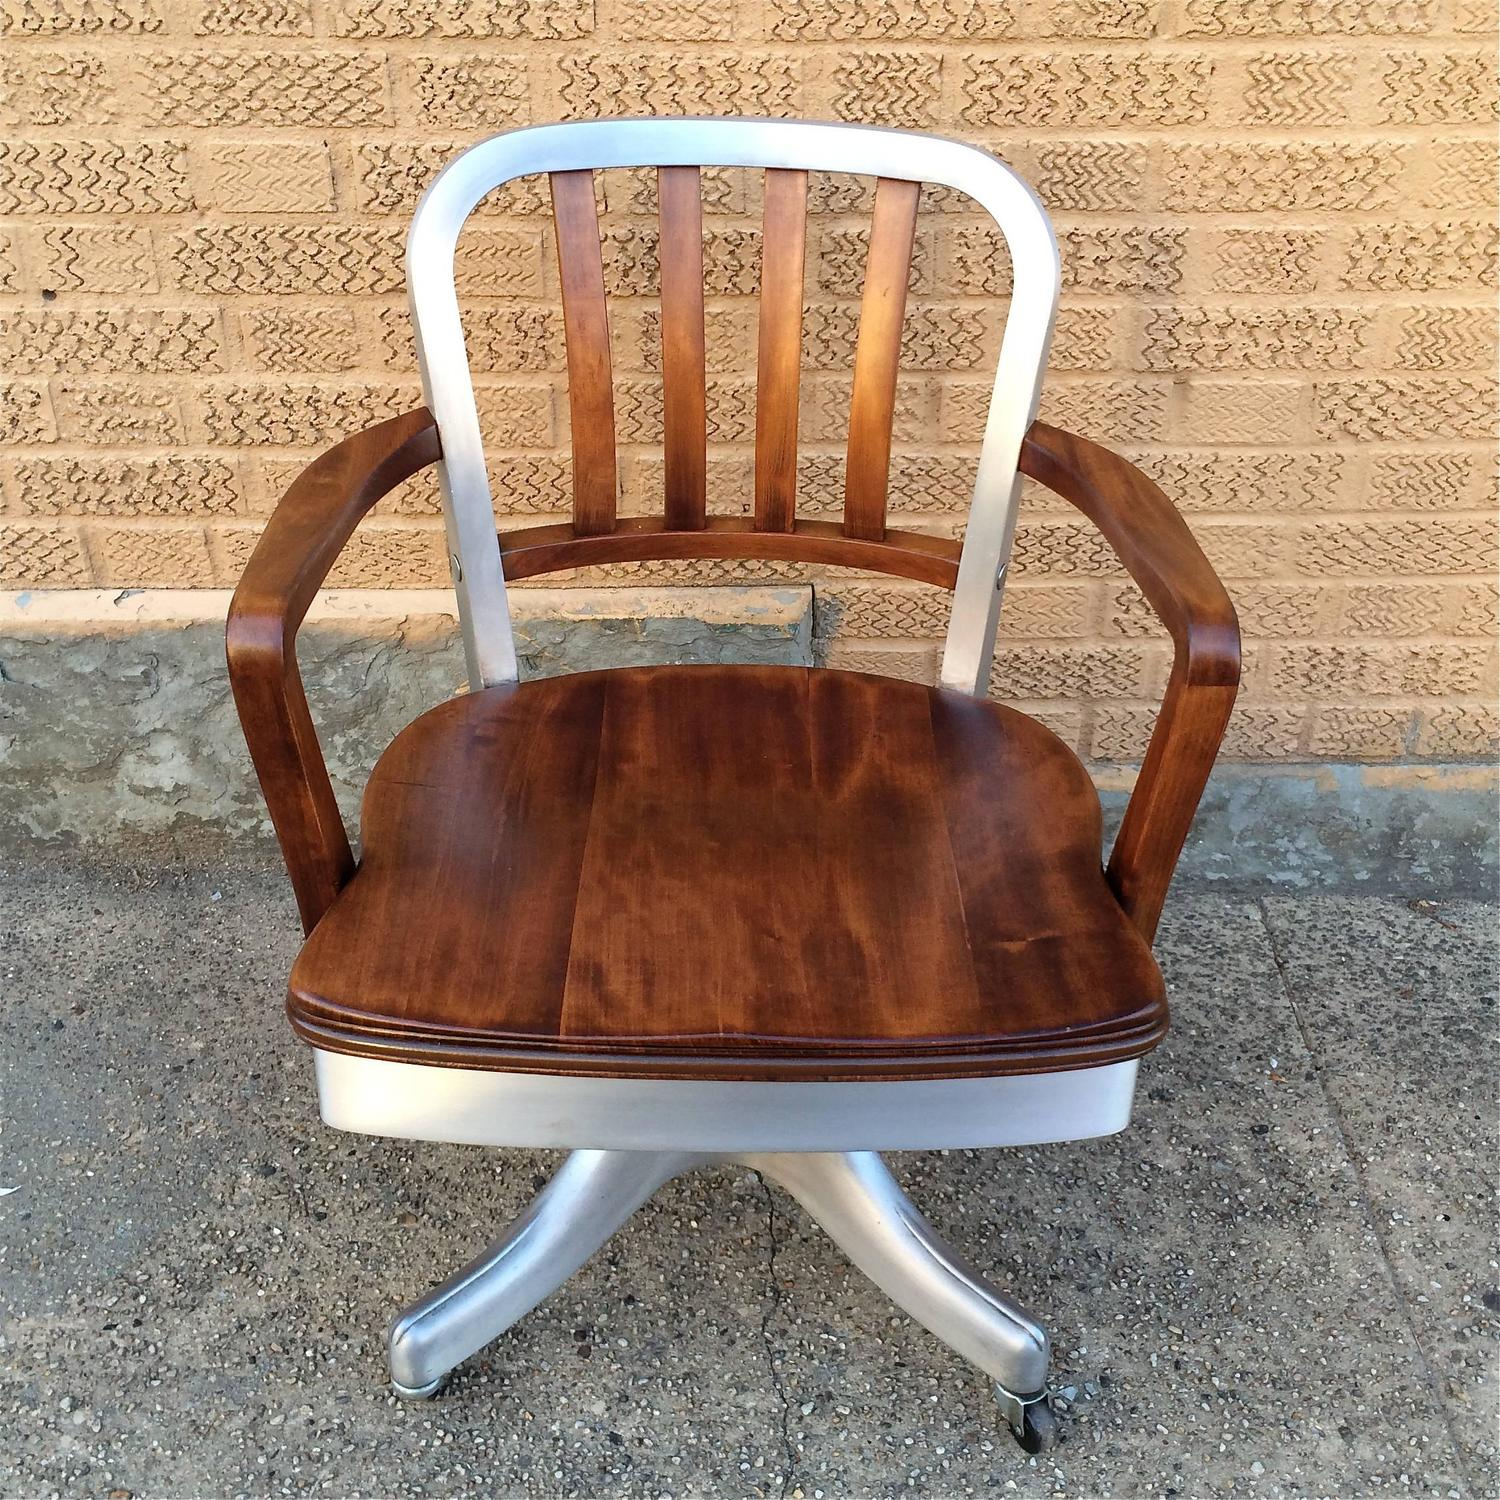 shaw walker chair beach chairs rolling aluminum and walnut office desk